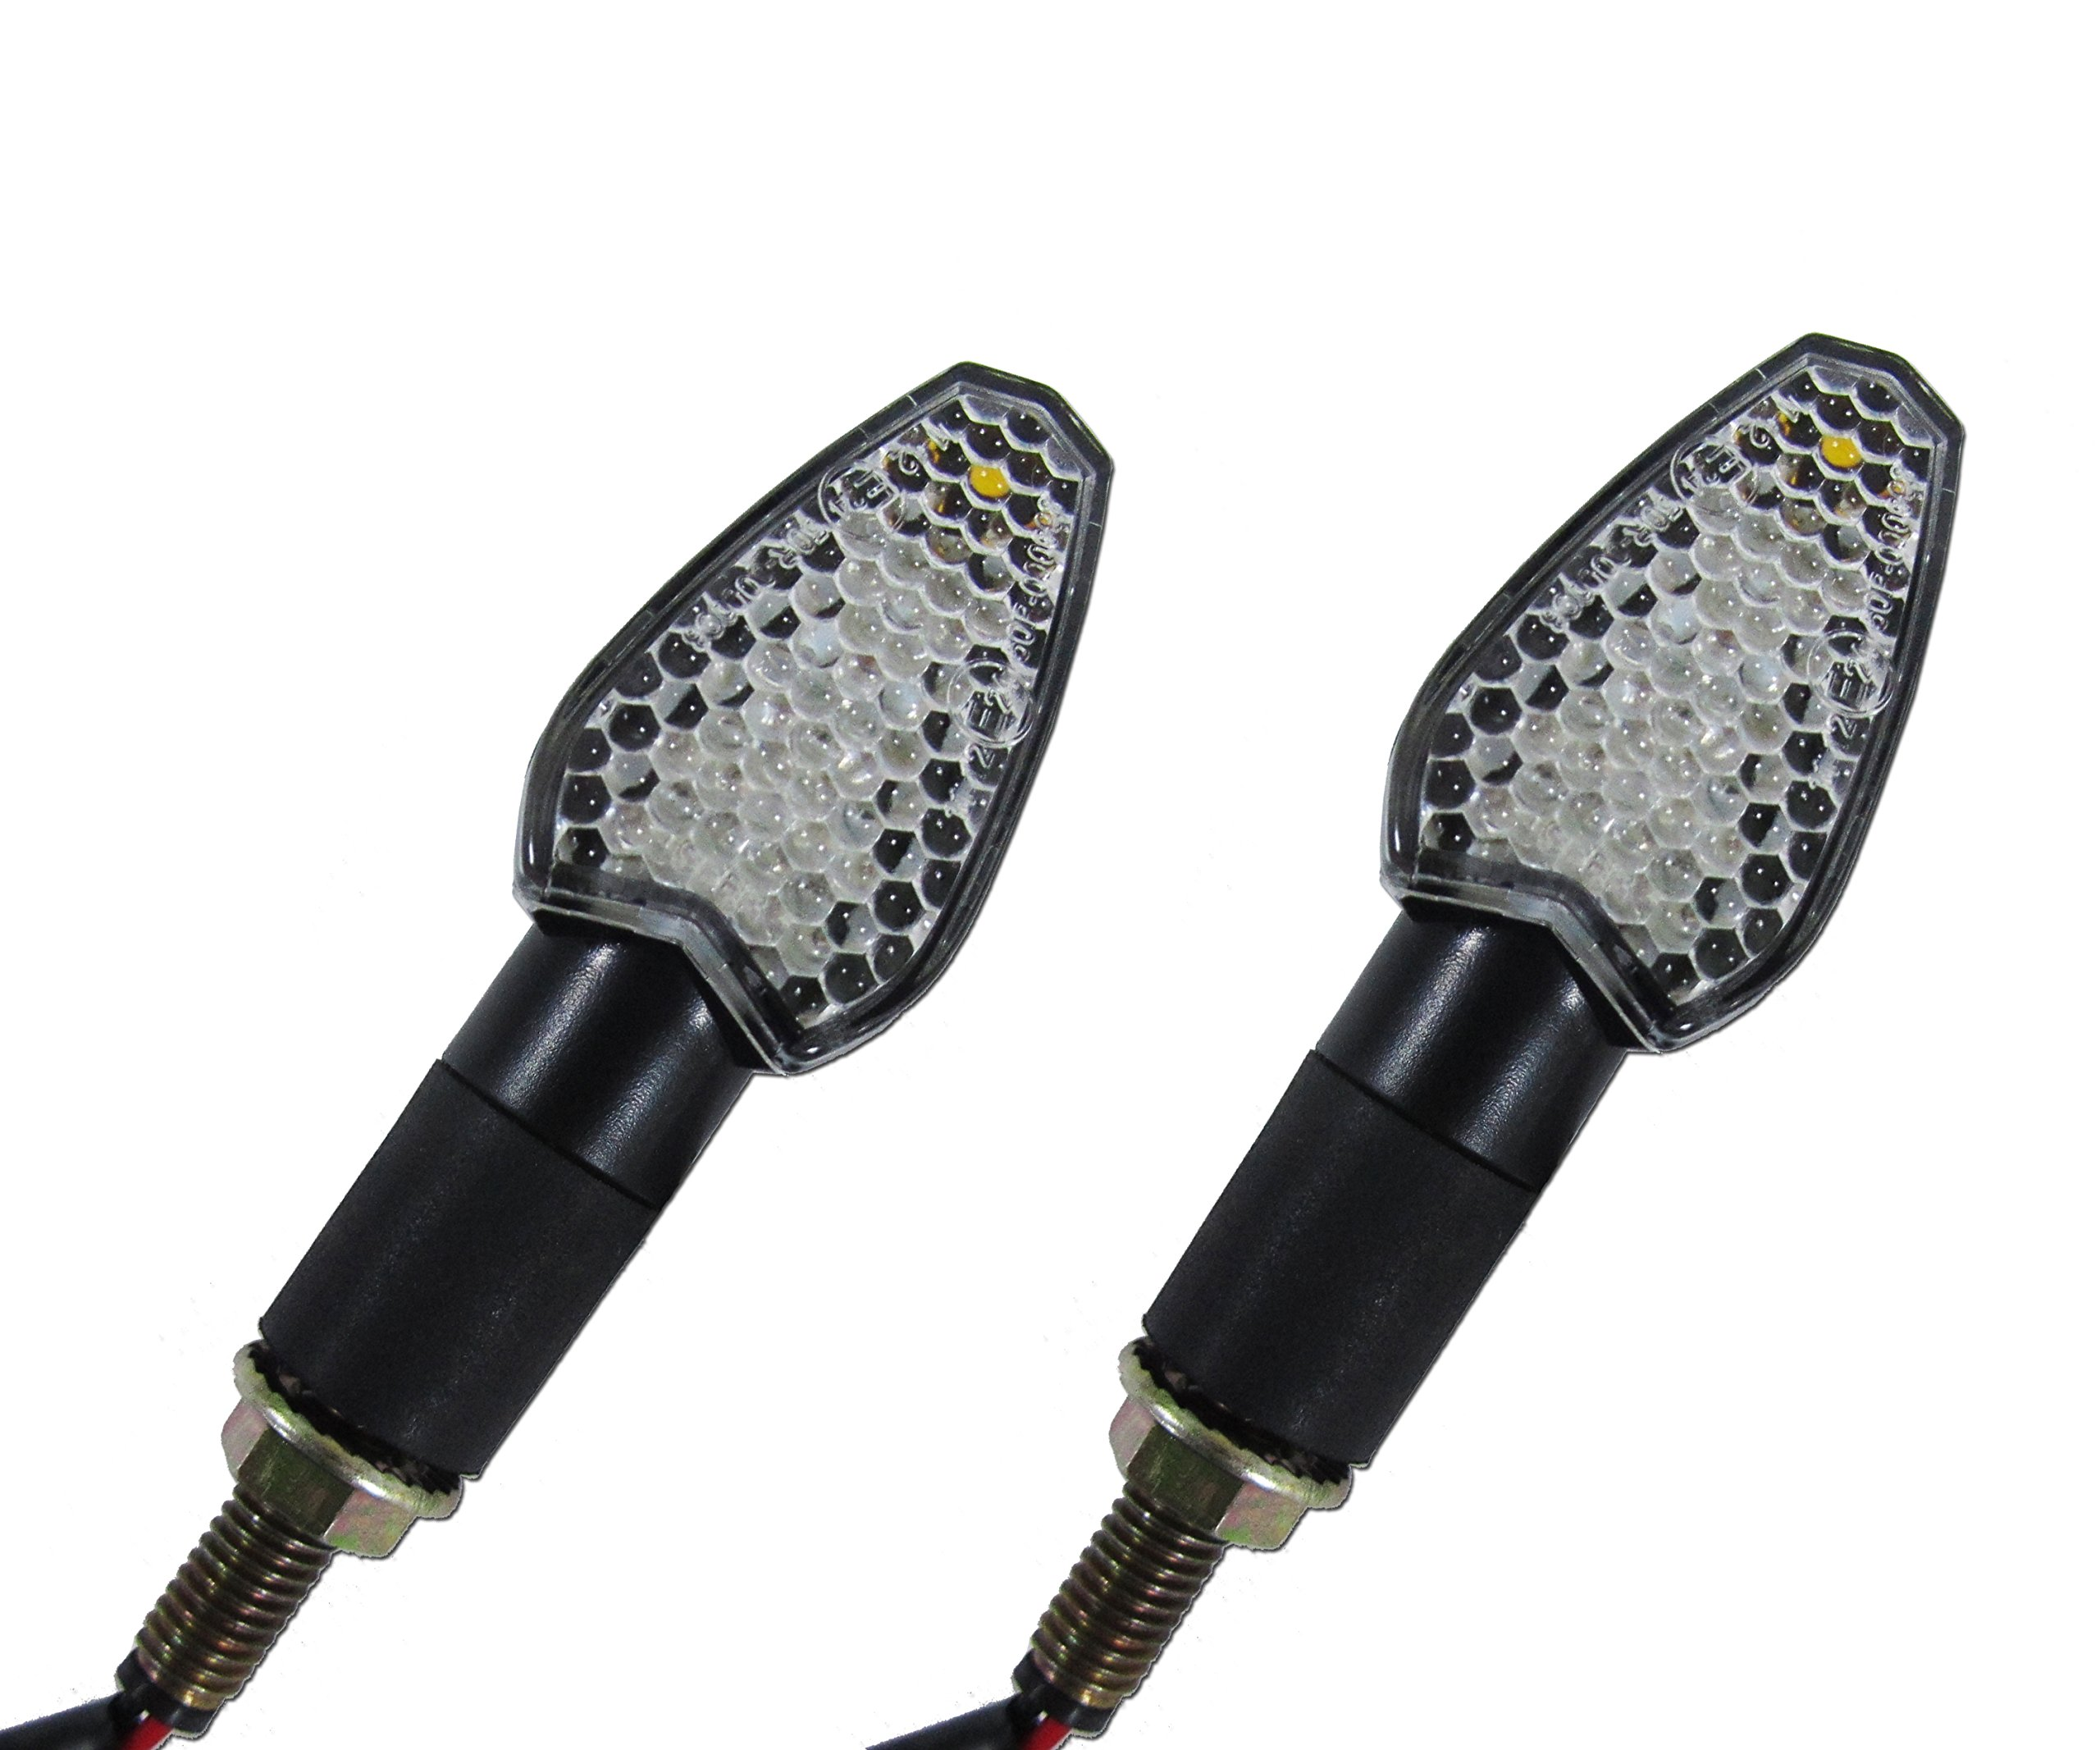 LED Mini Black Arrow Motorcycle Turn Signal Indicator Directional Lights Front/Rear Pair (2 Blinkers) for Aprilia, Buell, BMW, Harley, Honda, Kawasaki, KTM, Moto Guzzi, Suzuki, Triumph, Yamaha